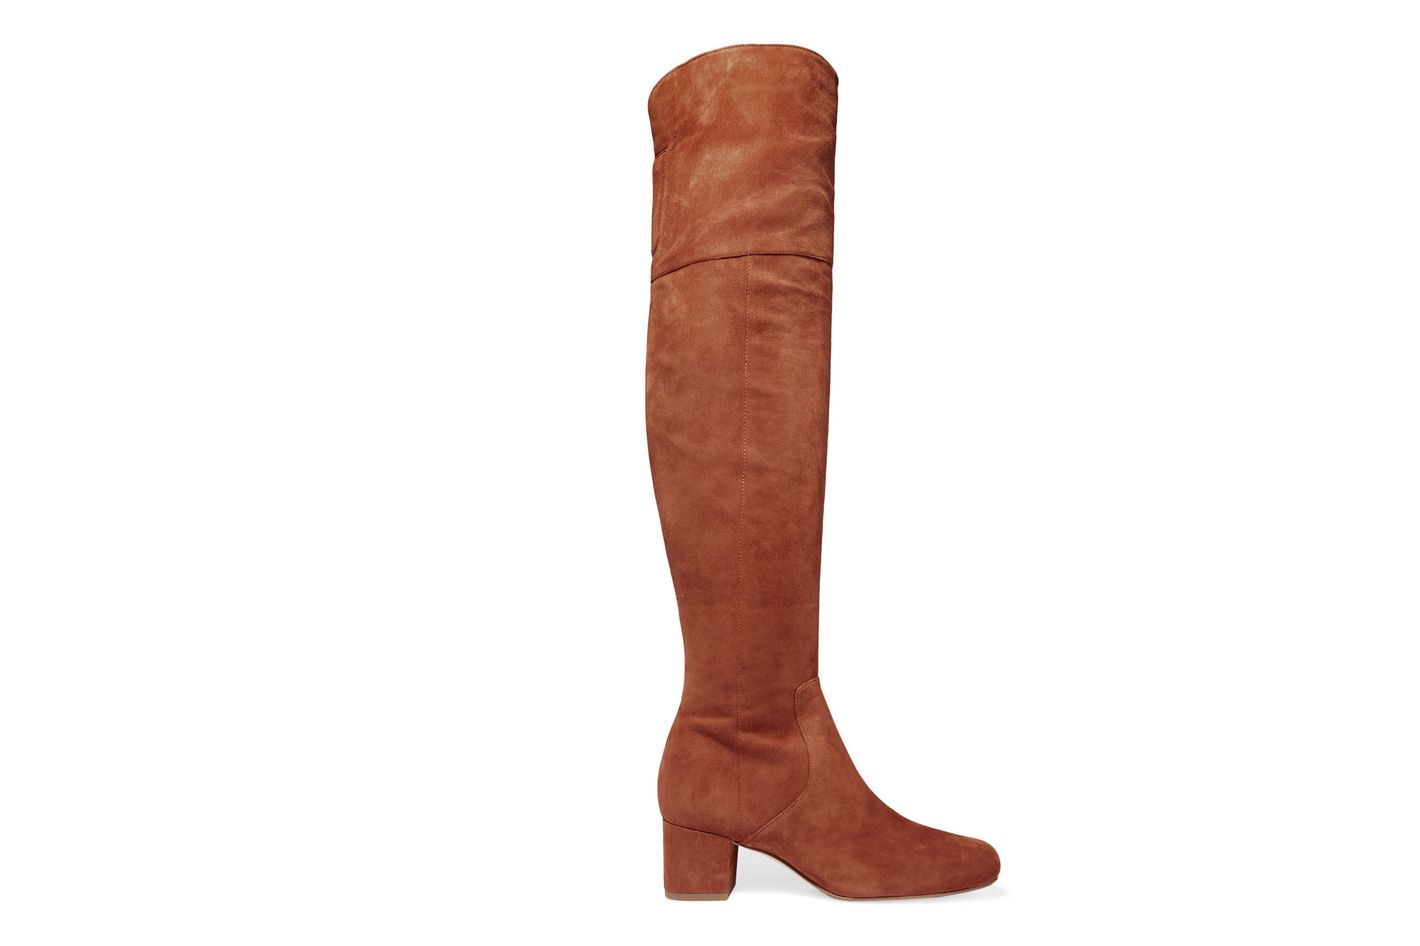 Sam Edelman 'Elina' Suede Over-the-Knee Boots